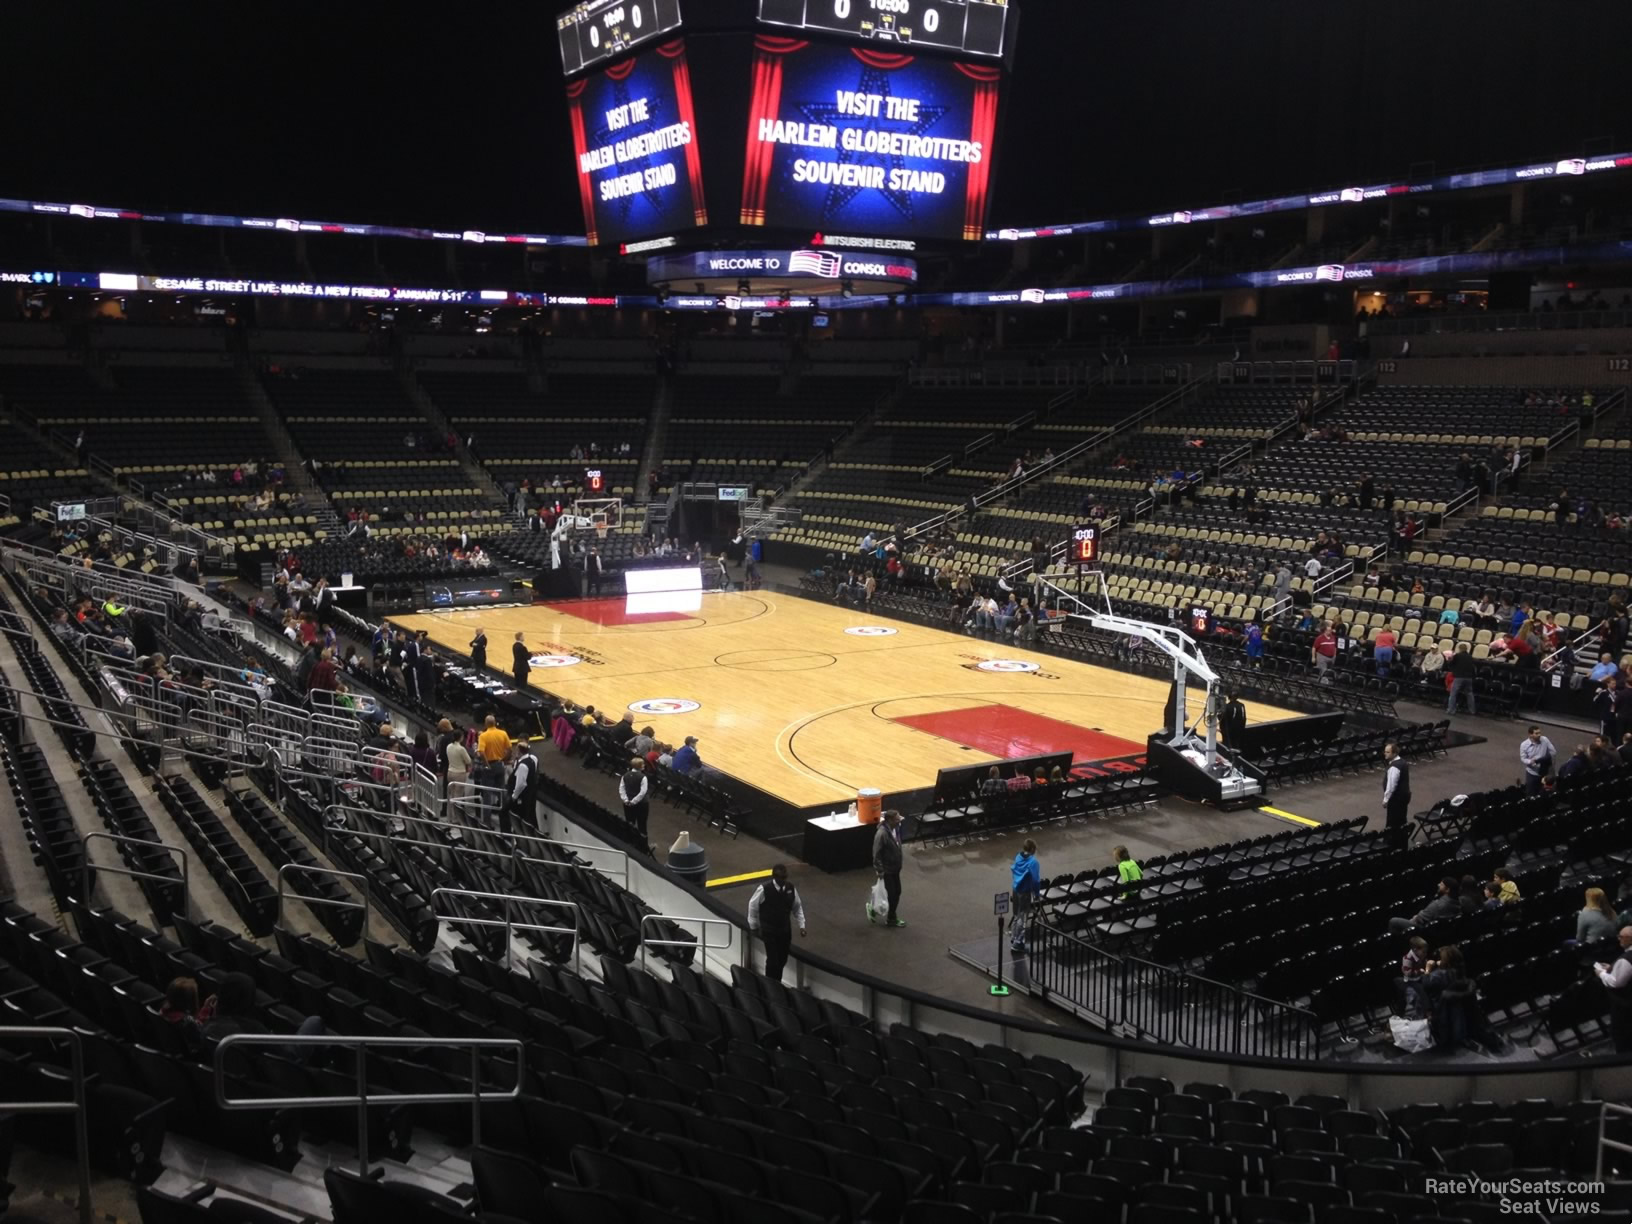 Section 120 seat view